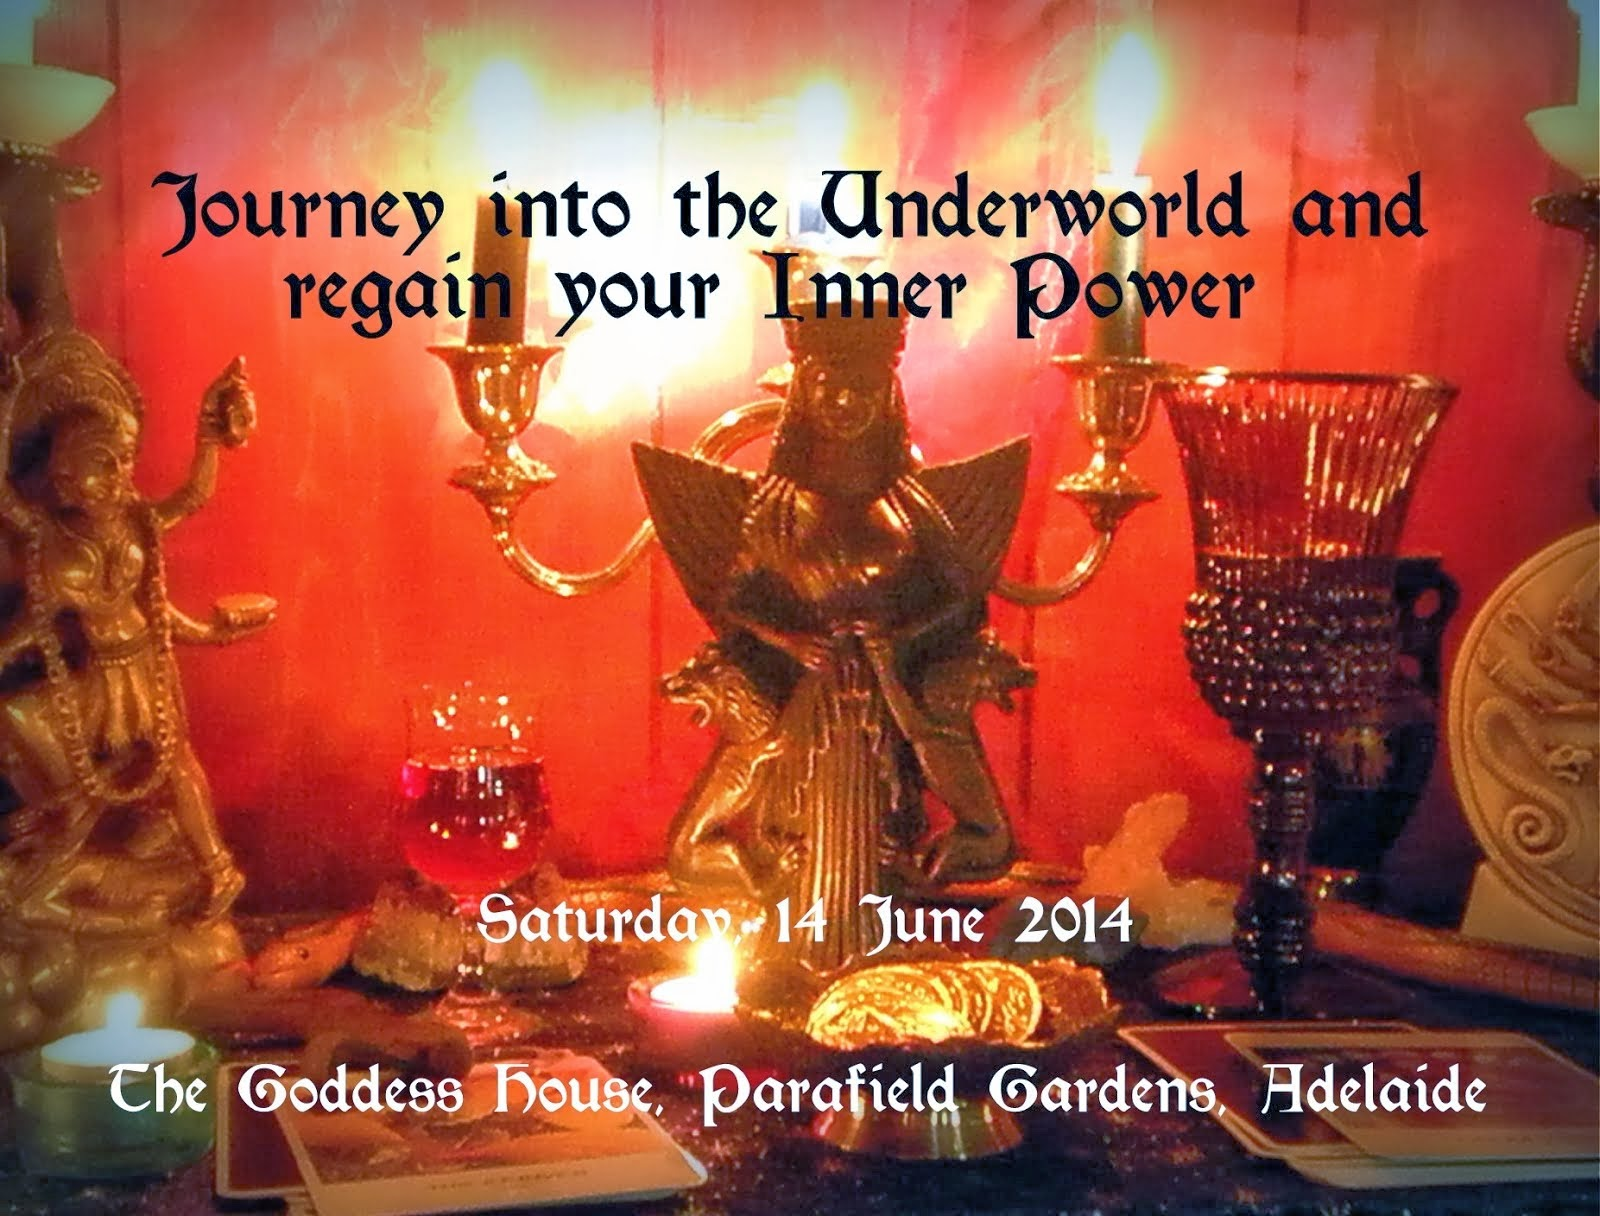 Journey with the Dark Goddess (14 June 2014)